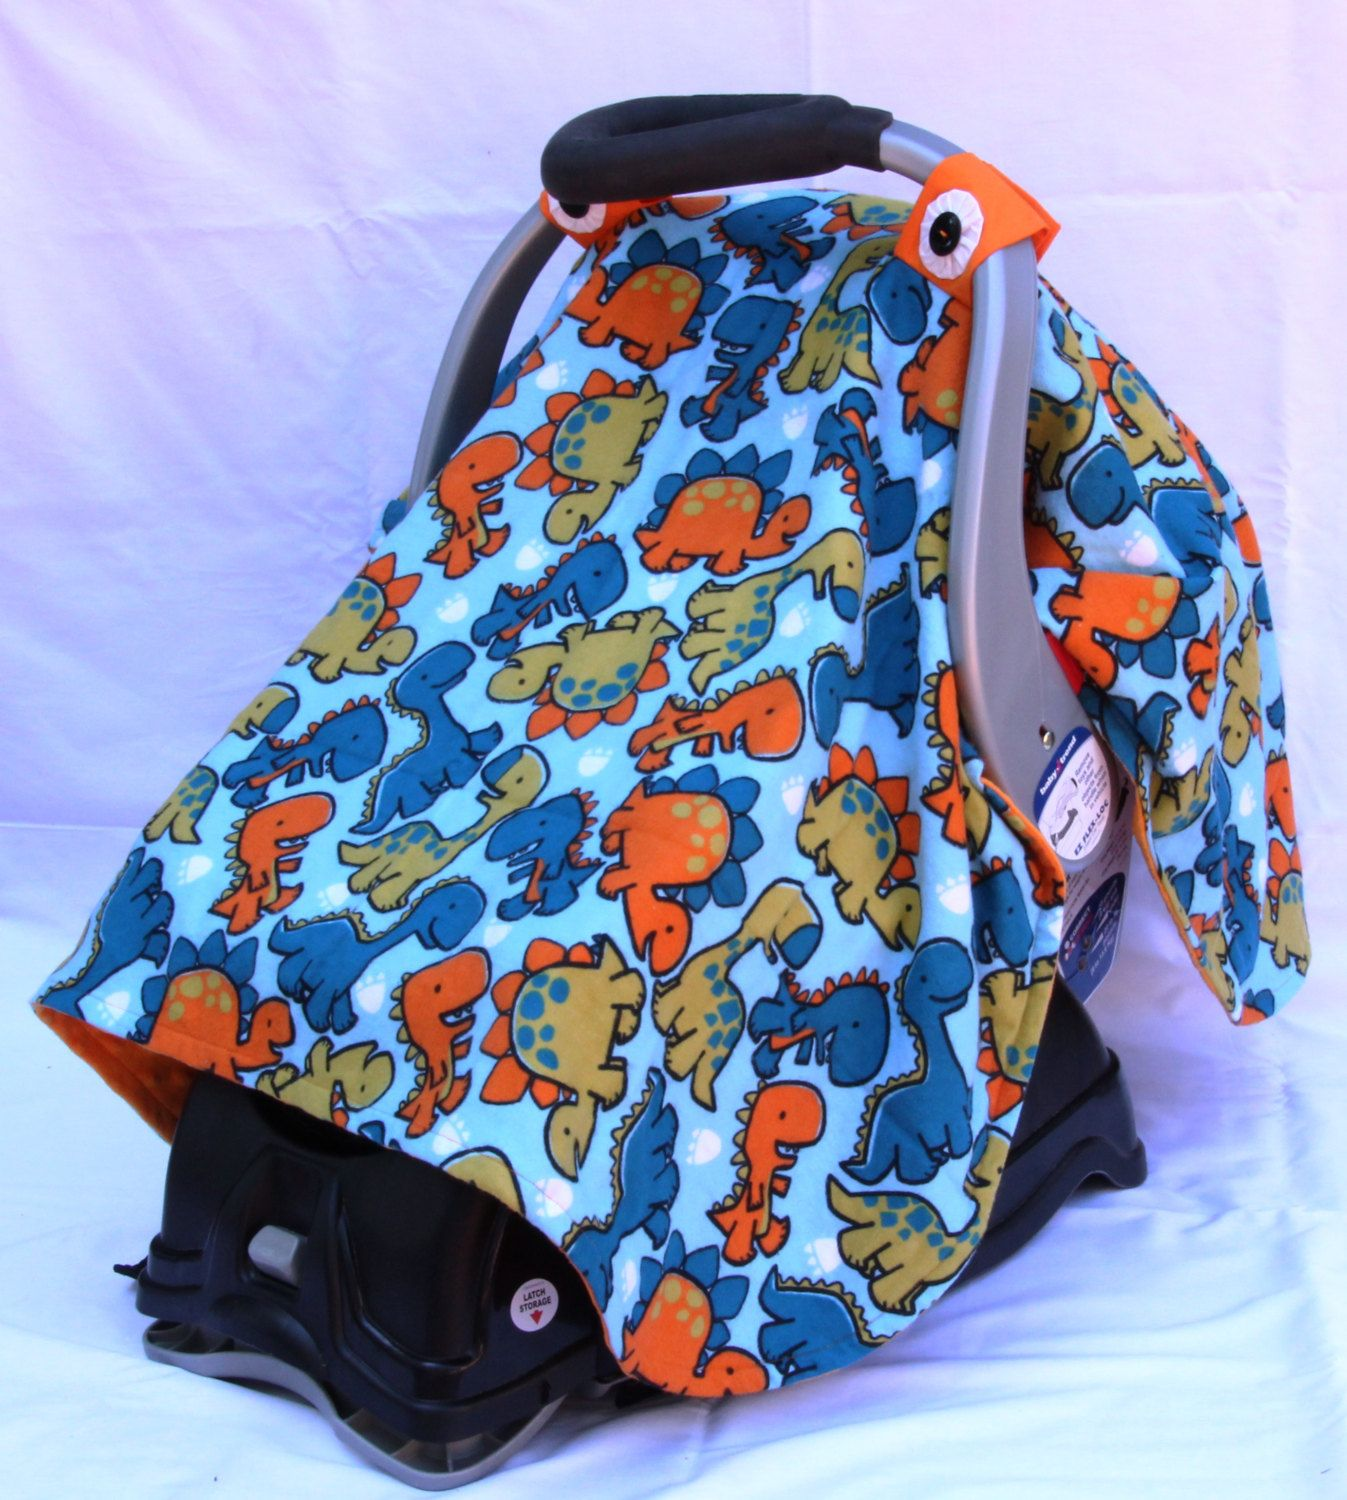 Boys Baby Car Seat Cover with Dinosaurs All Over, Baby Shower Gift